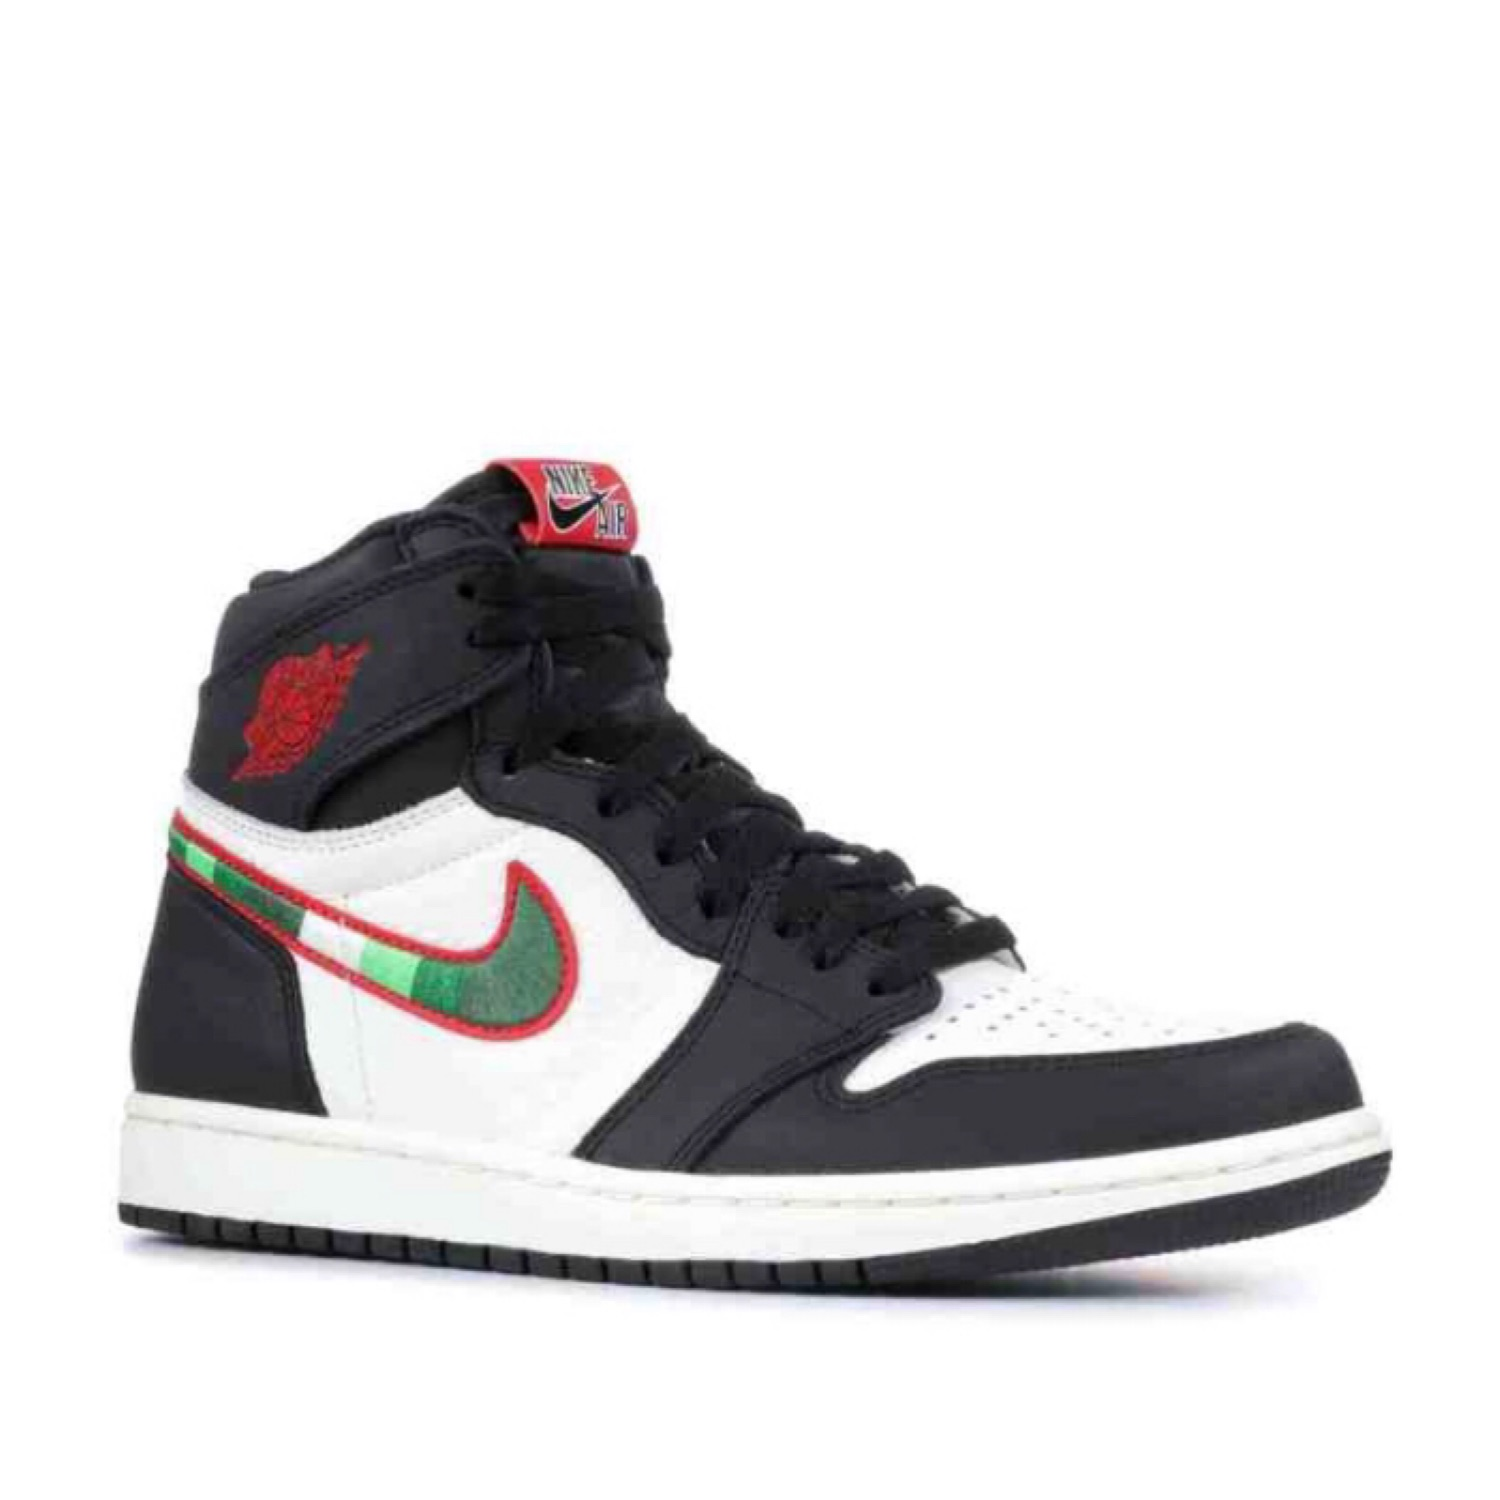 5cead718a63d04 Jordan 1 Retro High Sports Illustrated